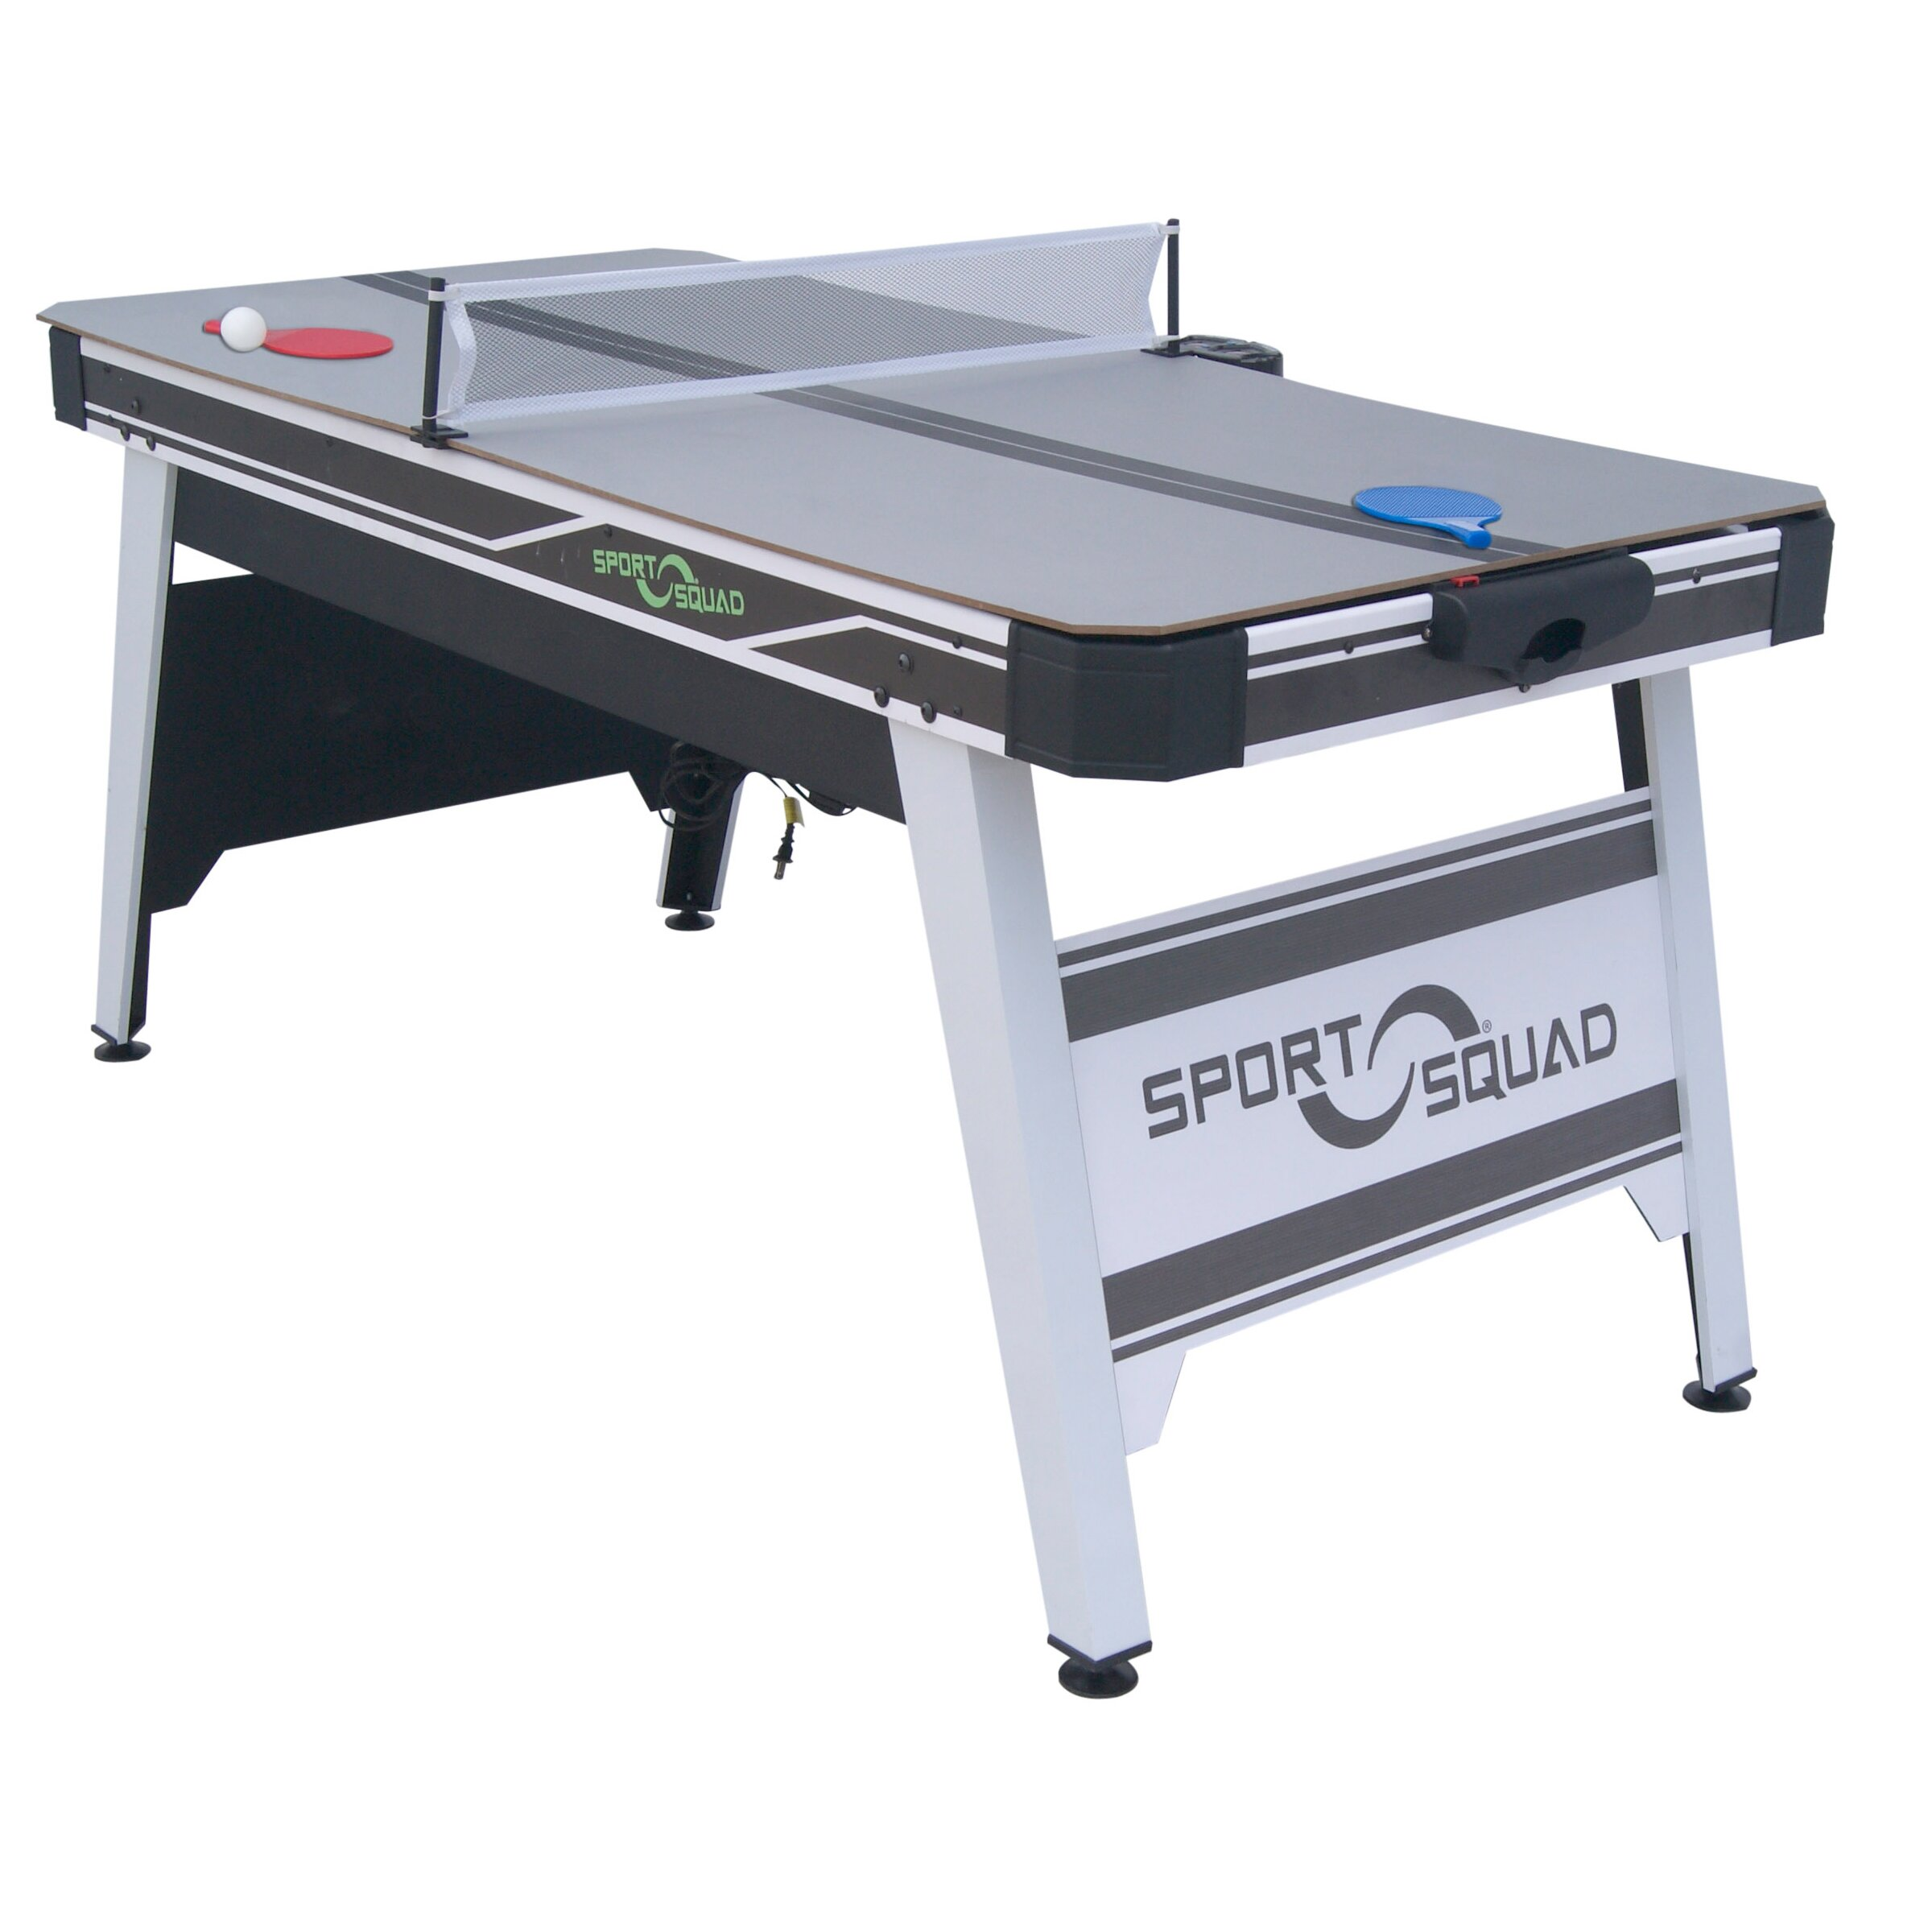 Sportsquad Hx 66 5 39 5 Air Hockey Table With Conversion Top Reviews